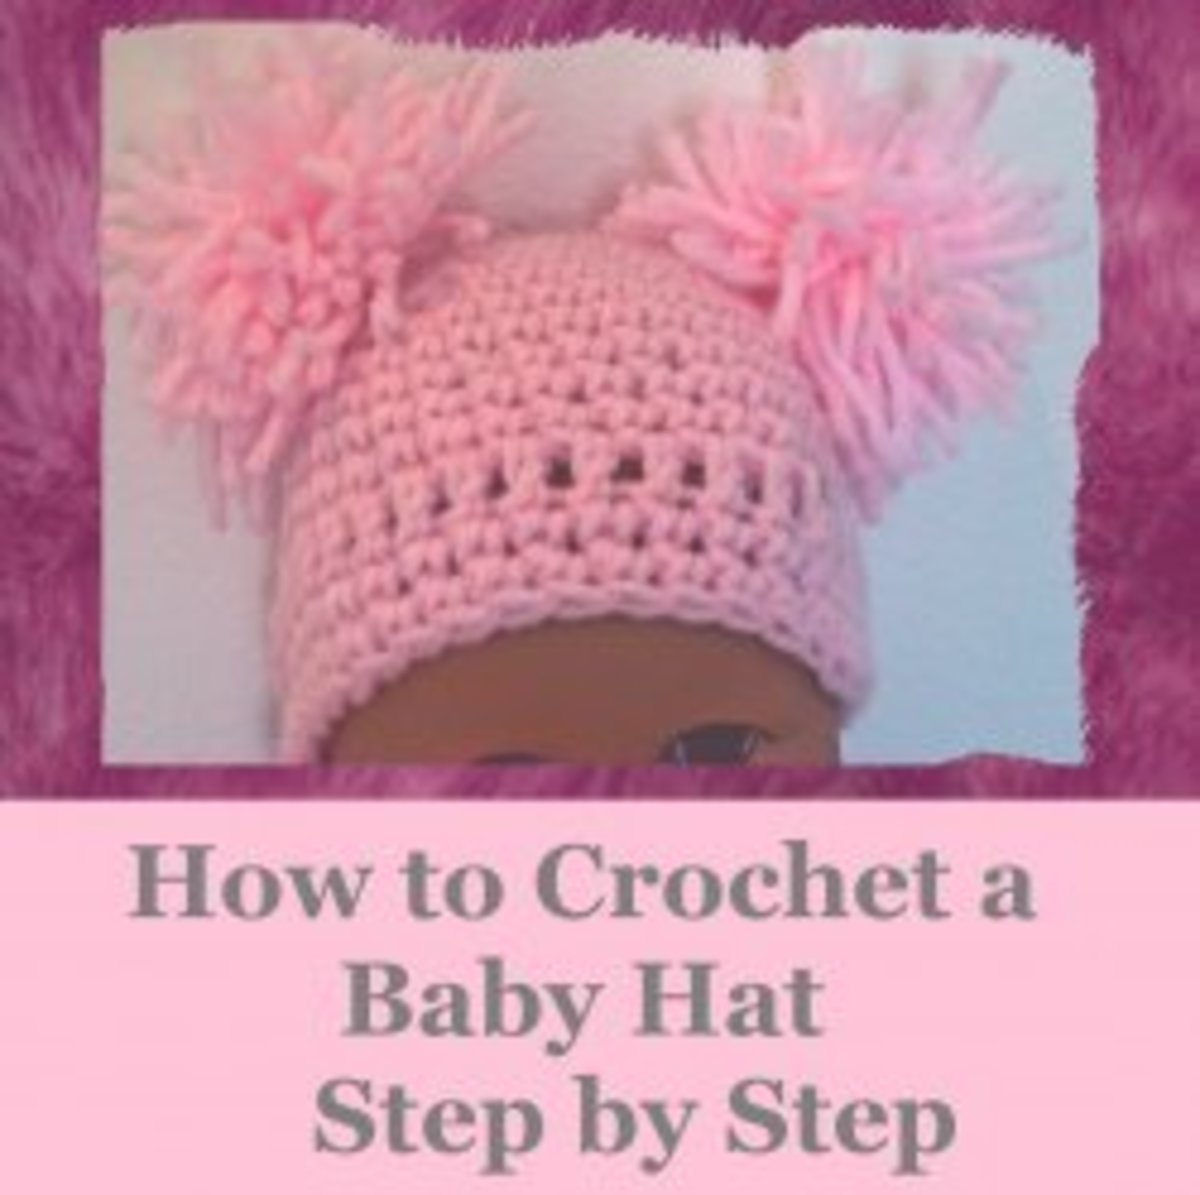 Learn how to crochet an easy baby hat.